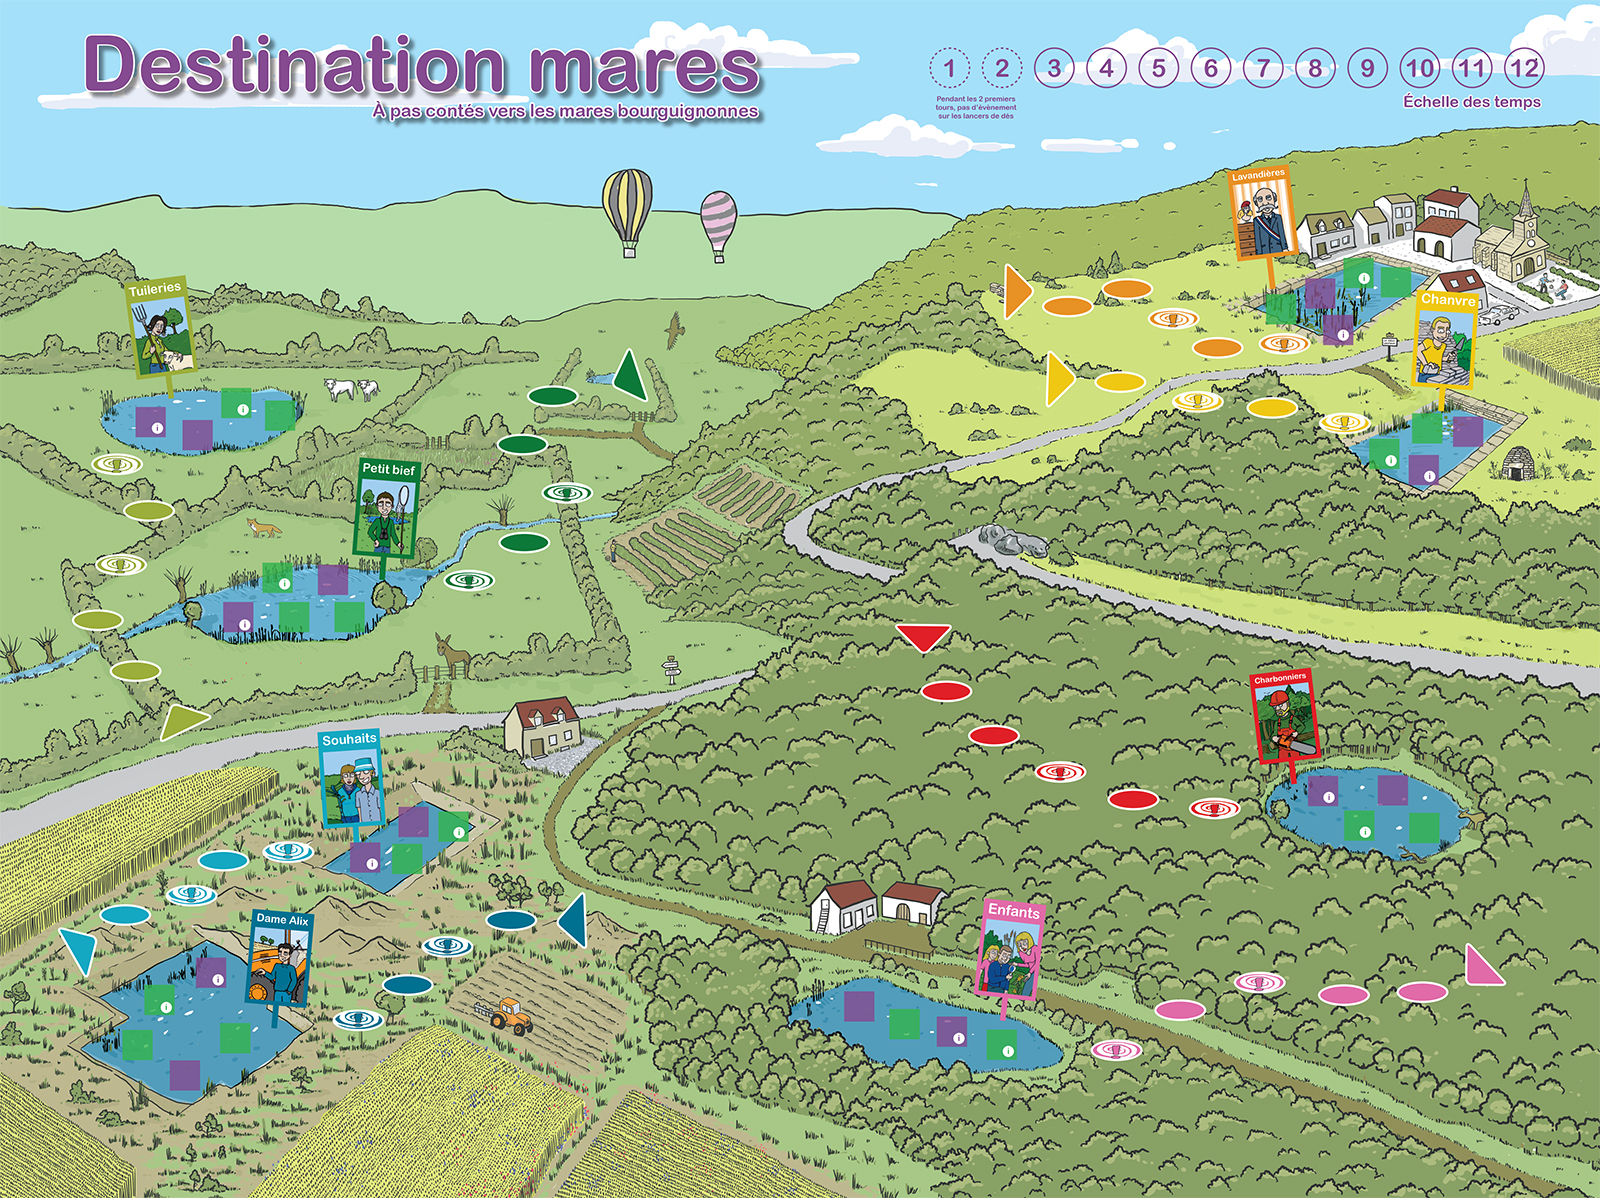 Plateau Destination mares